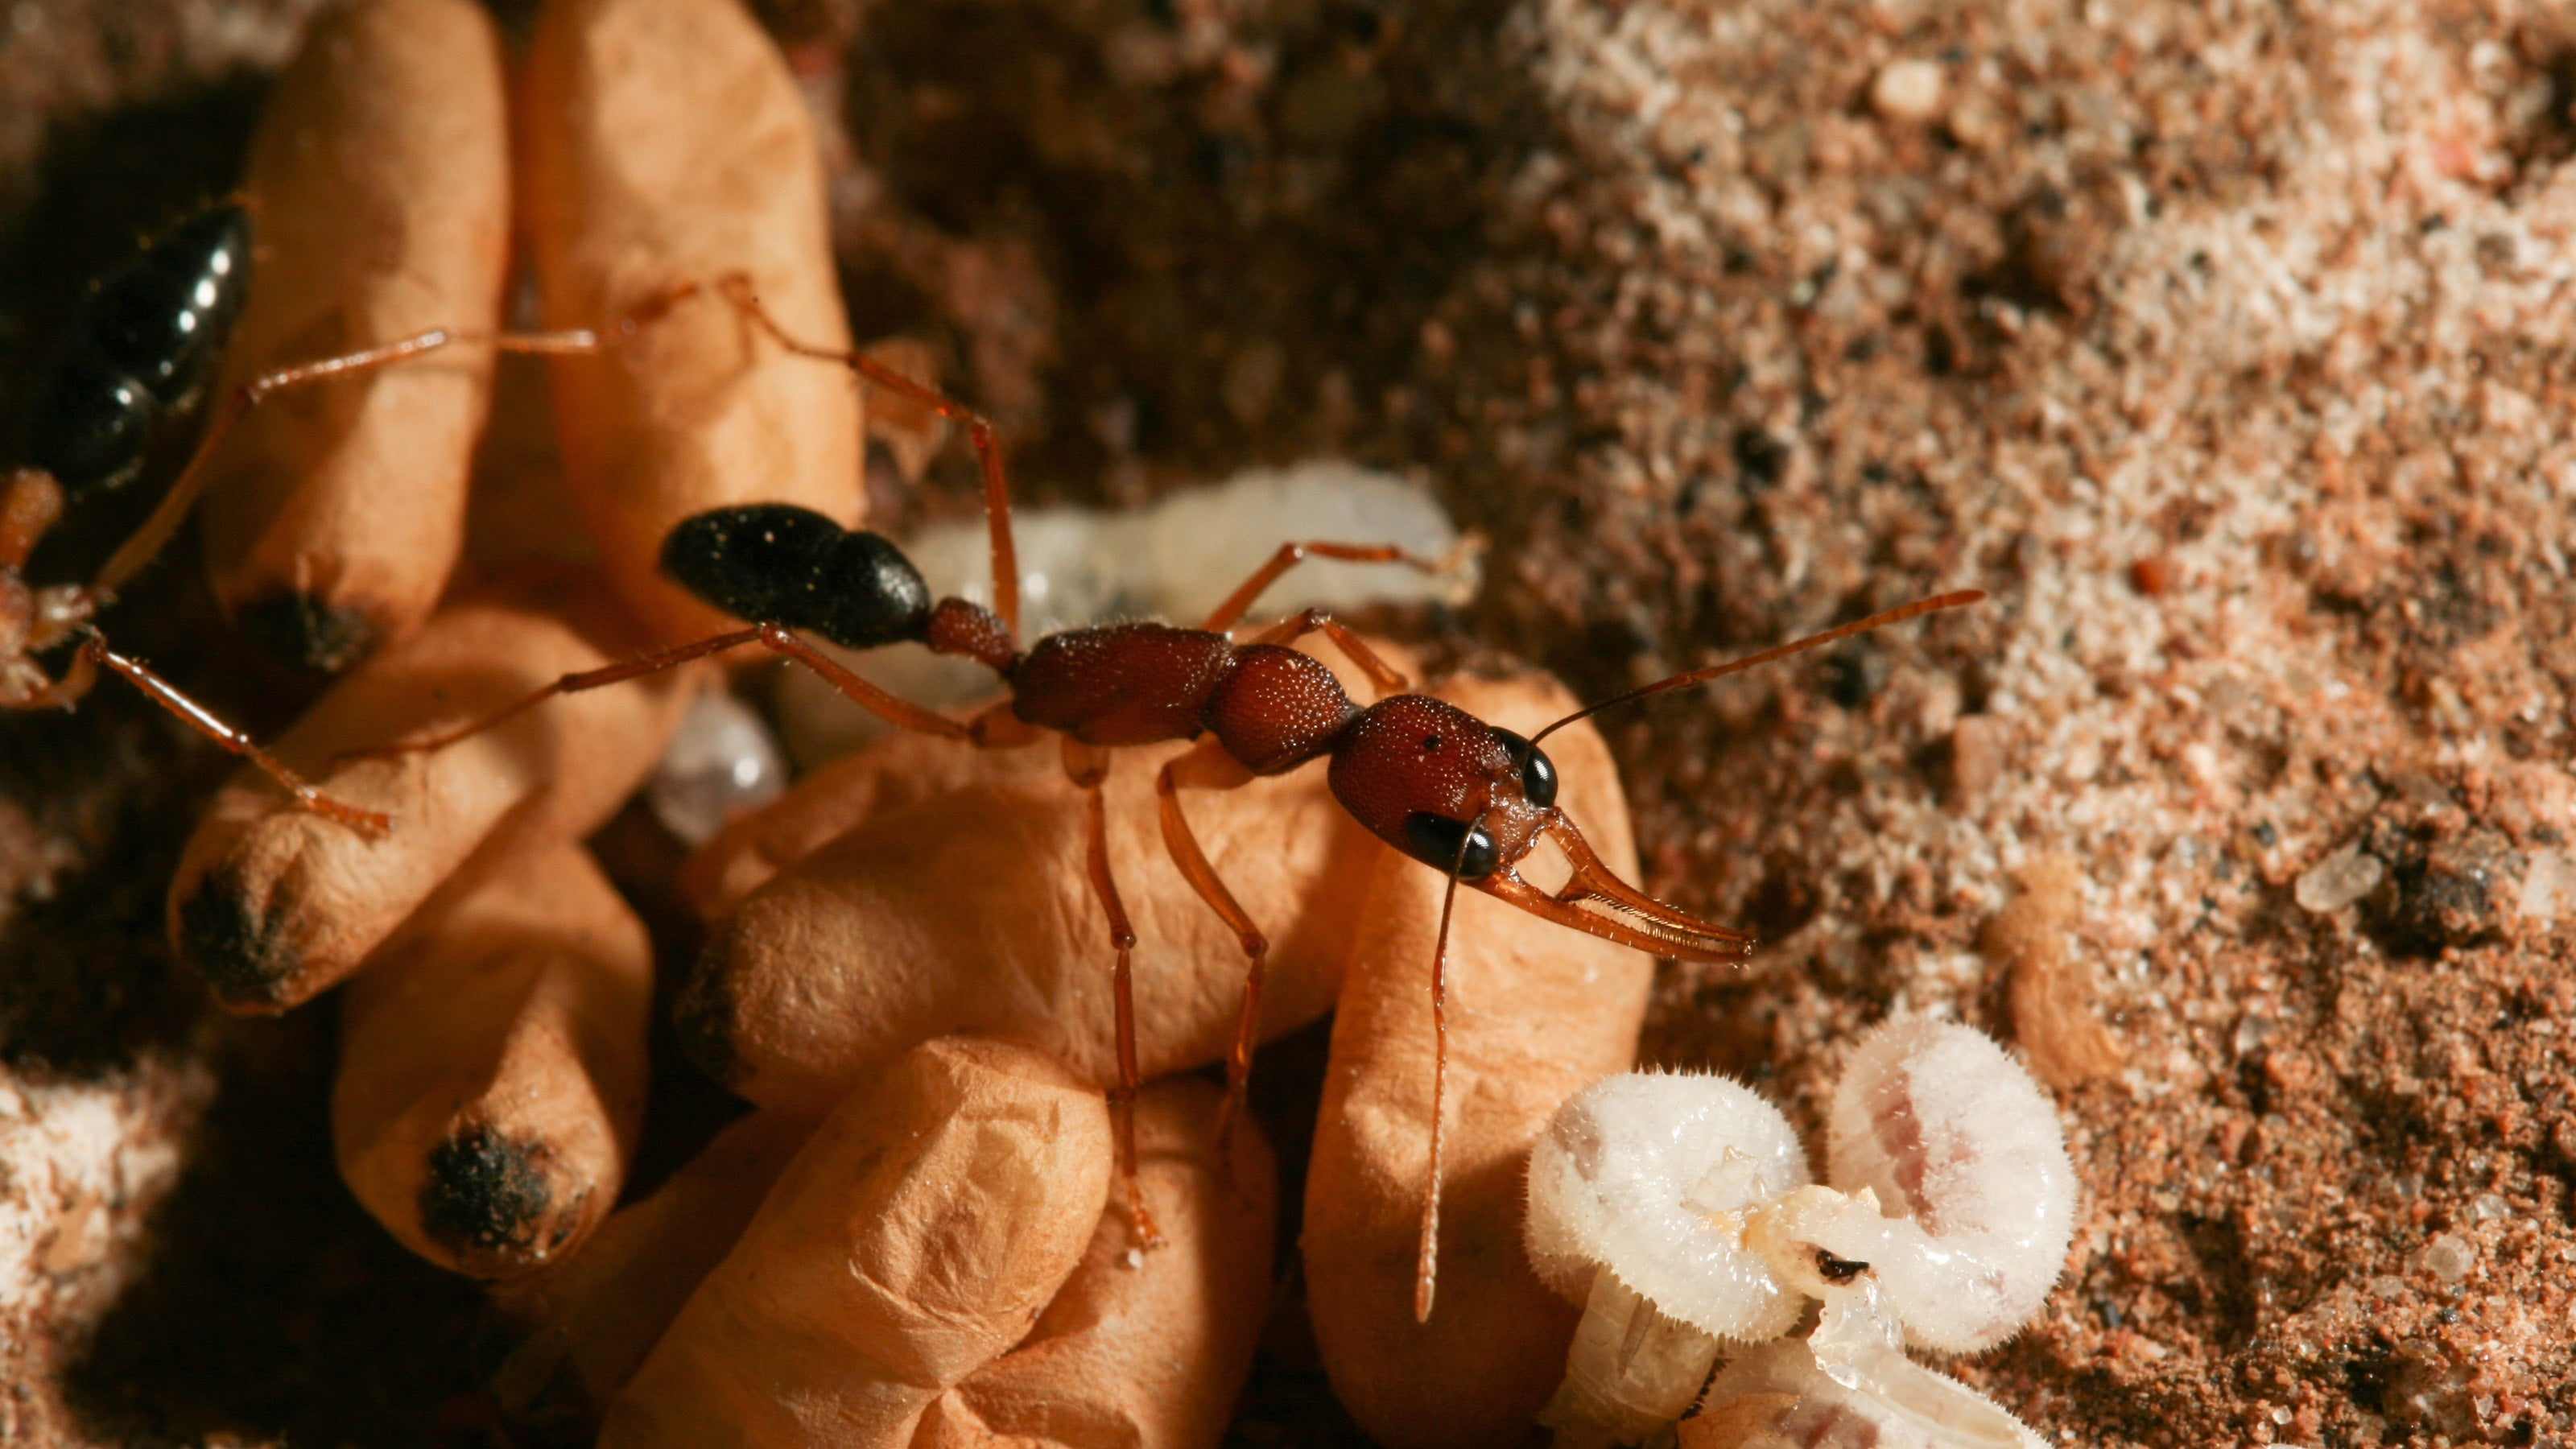 These Ants Do A Lion King-Like Ritual But With Chemicals